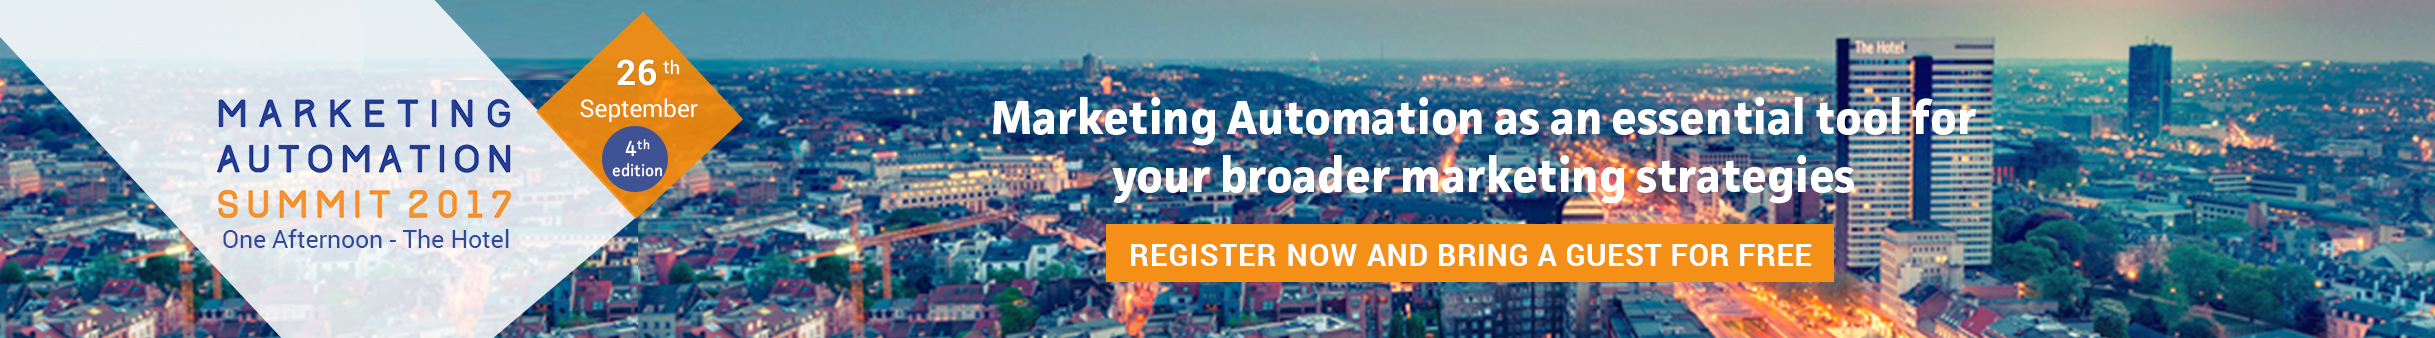 Marketing Automation Summit